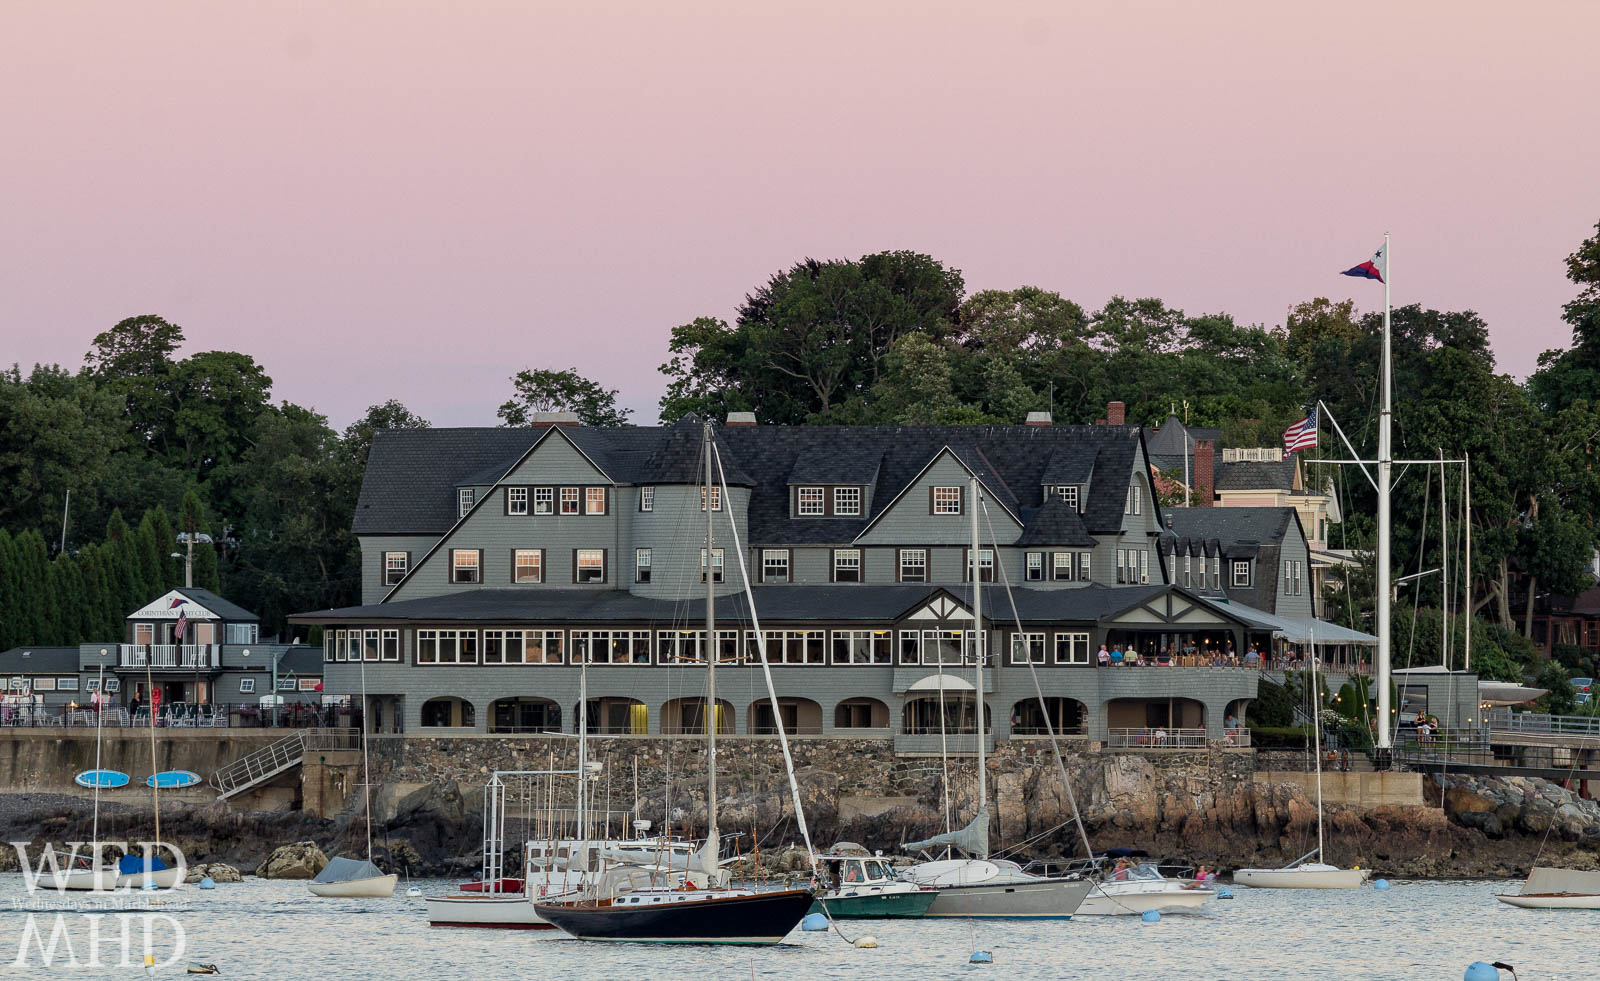 Evening light colors the sky pink over the Corinthian Yacht Club with boats moored in the harbor